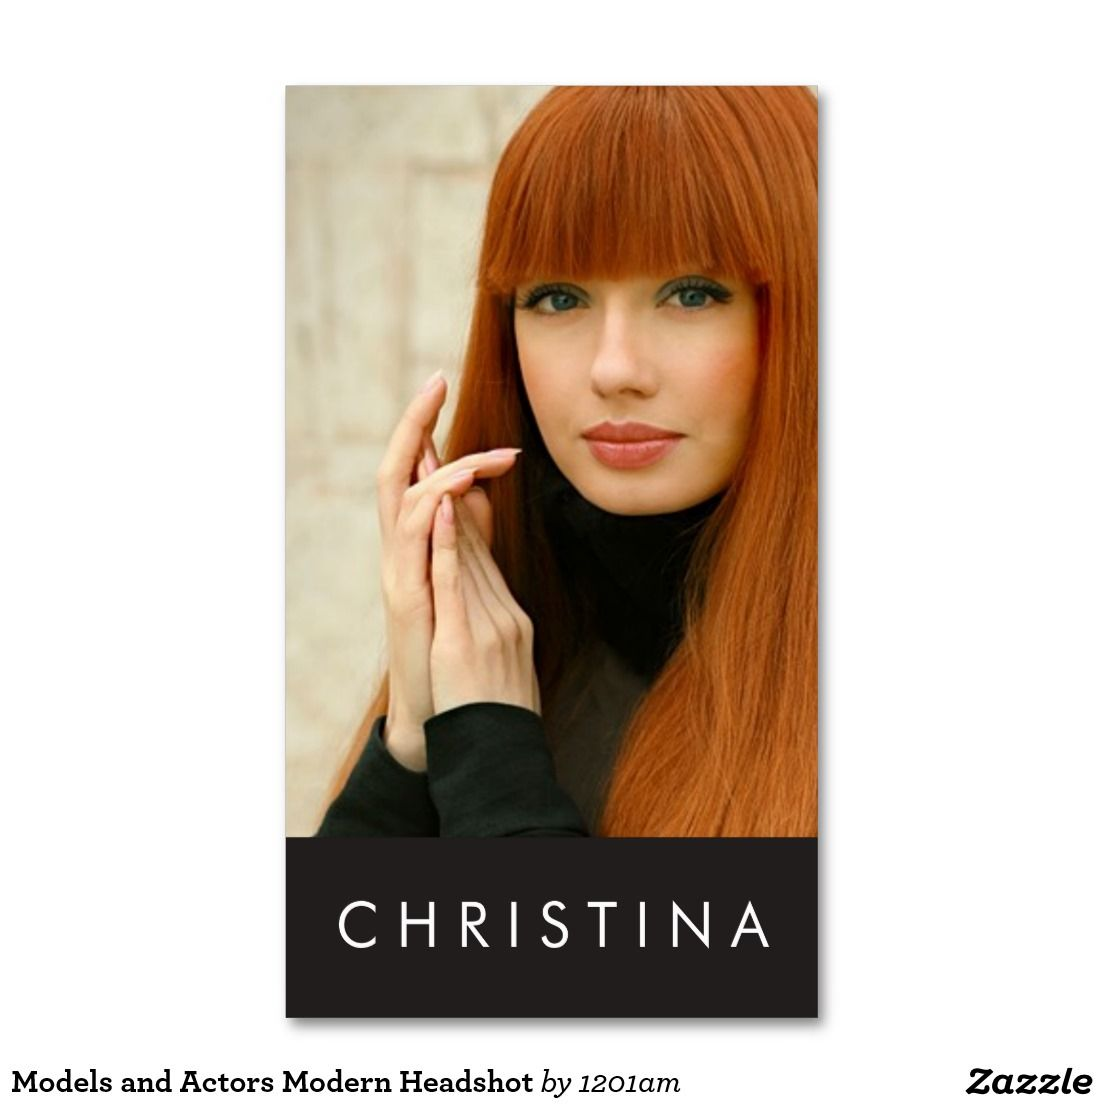 Models and Actors Modern Headshot Business Card | Business cards ...